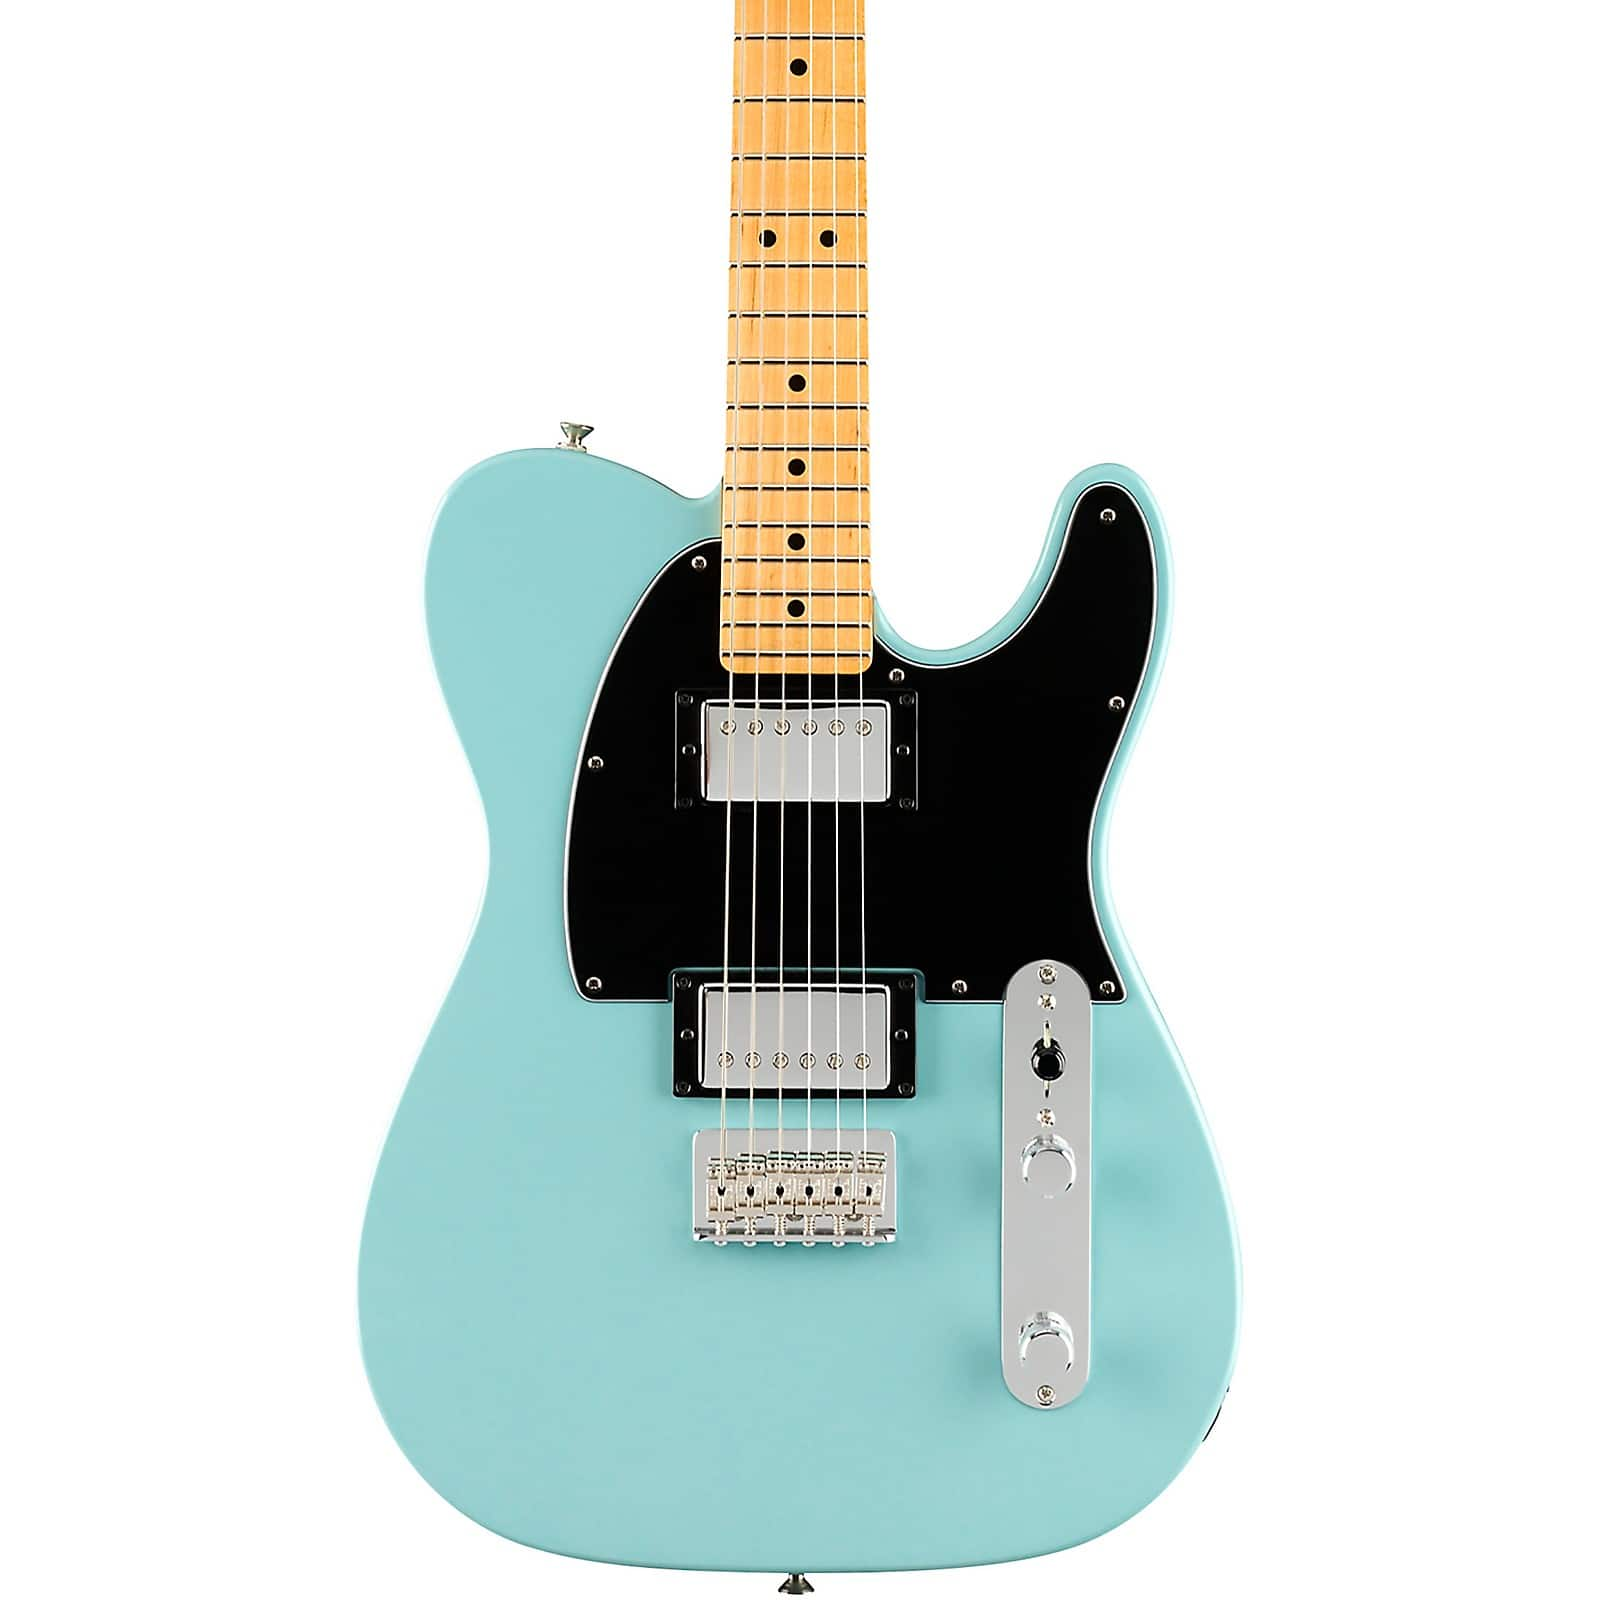 Fender Player Telecaster MIM Electric Guitar Limited Edition Daphne Blue $550 + Free Shipping